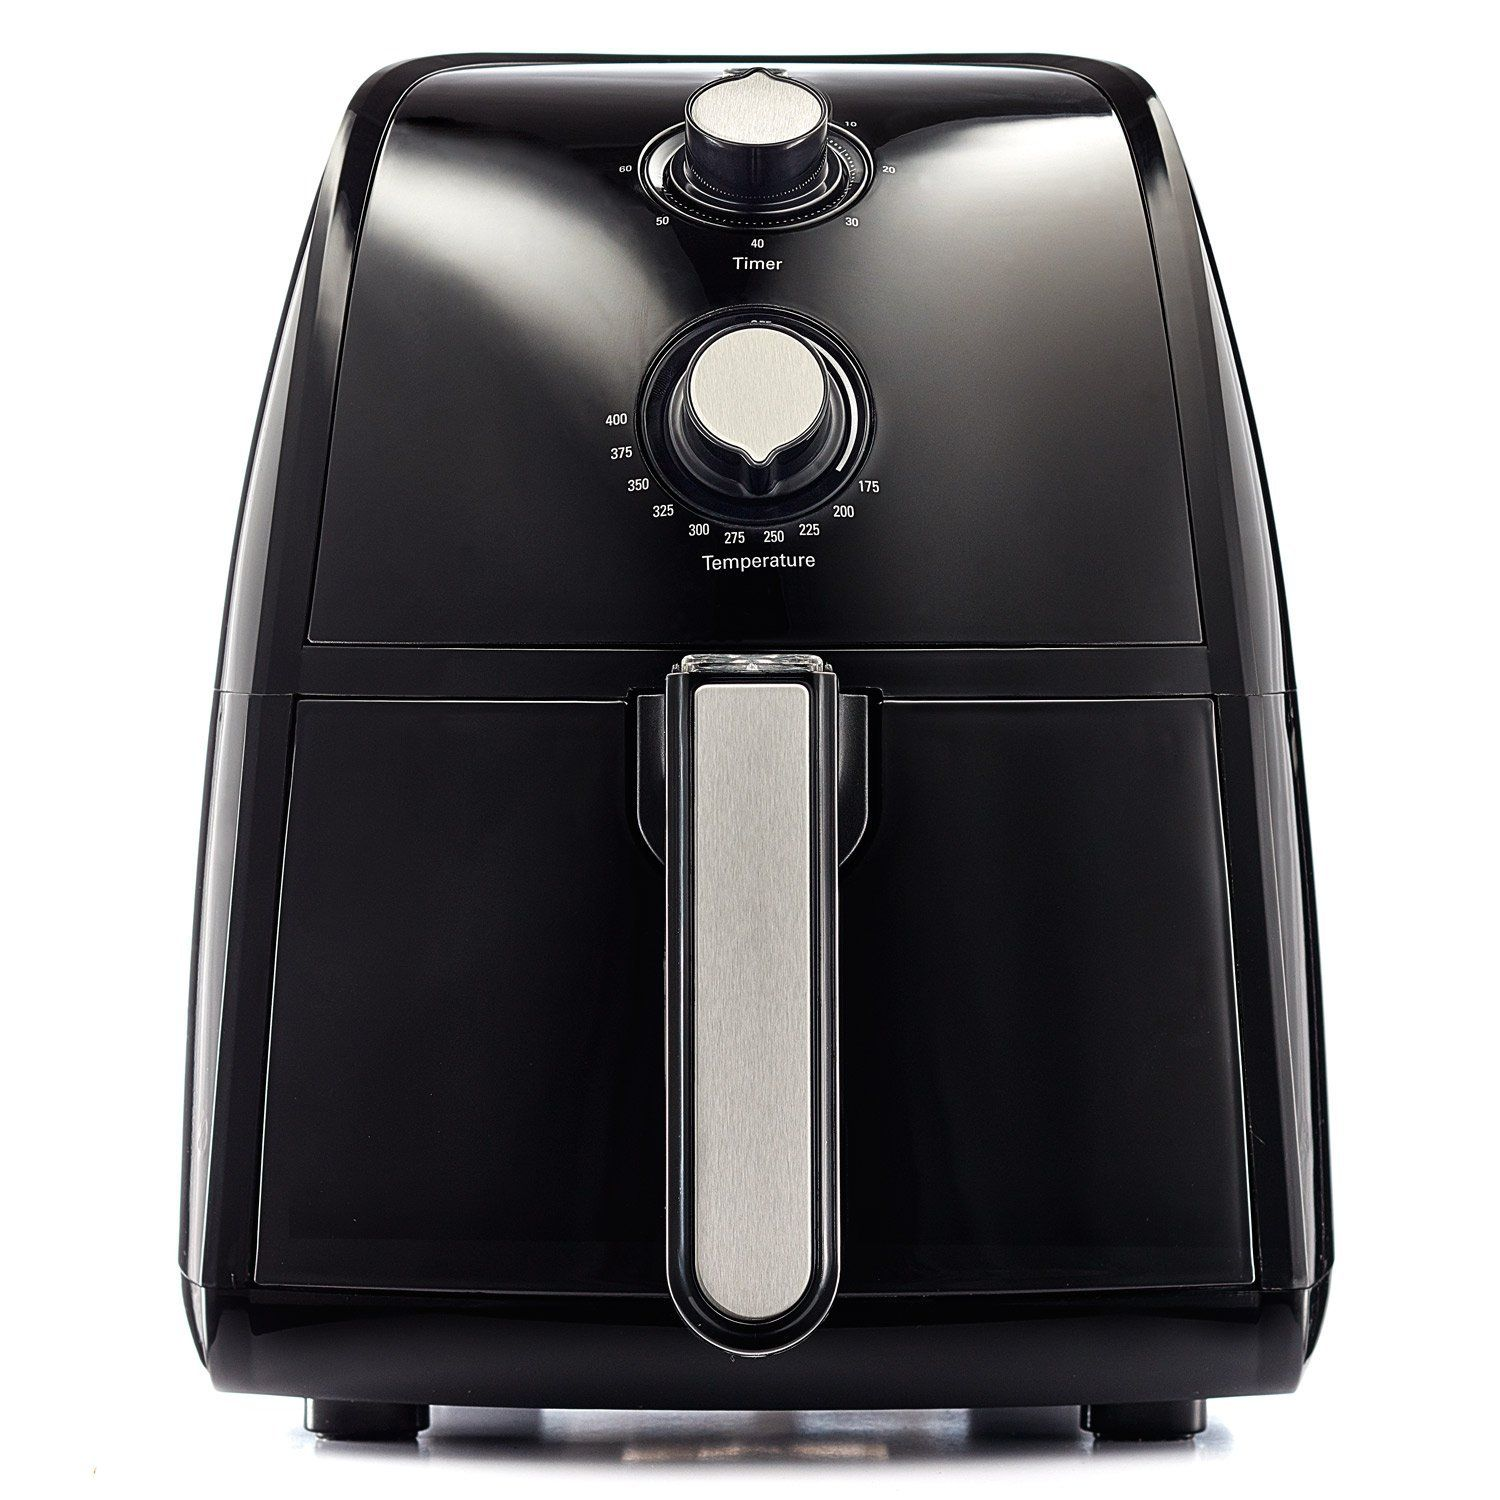 Best Top Ten Kitchen Small Appliances The Original and USA